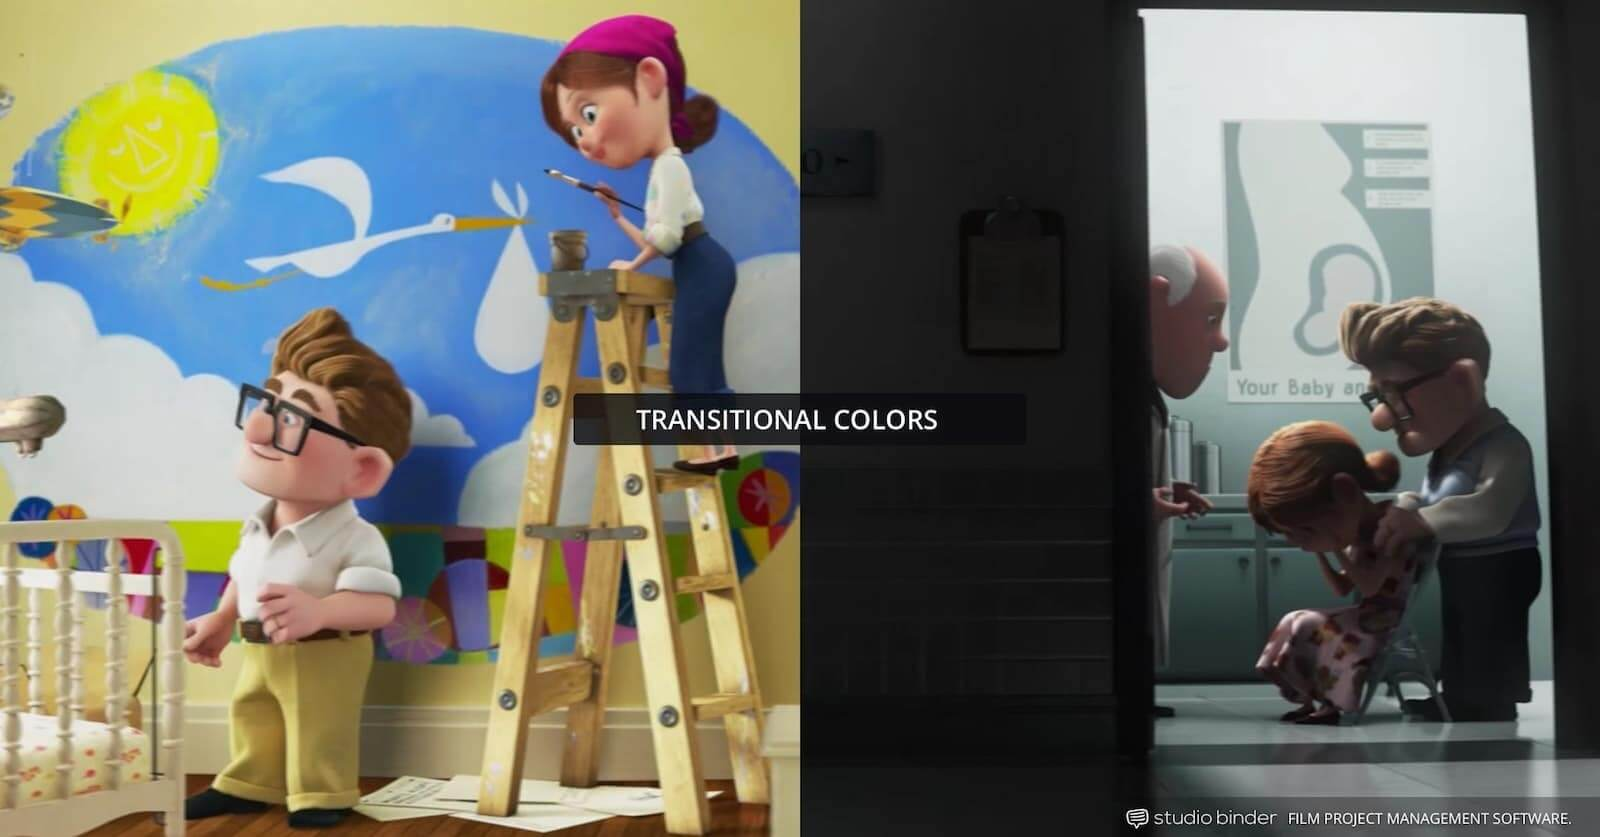 How to Use Color in Film - Transitional Colors - Up